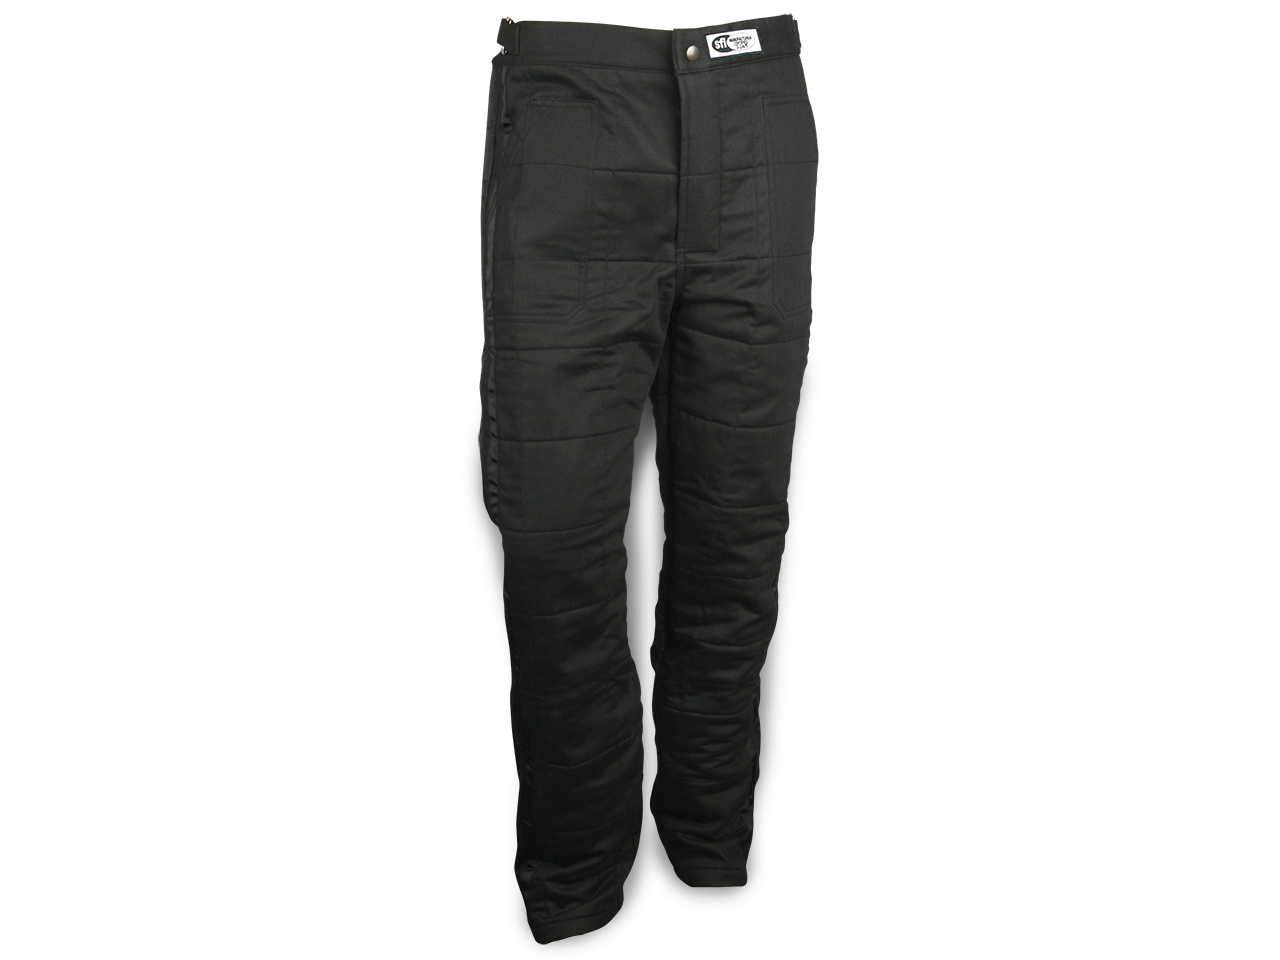 Impact Paddock Pant ONLY - (Small)